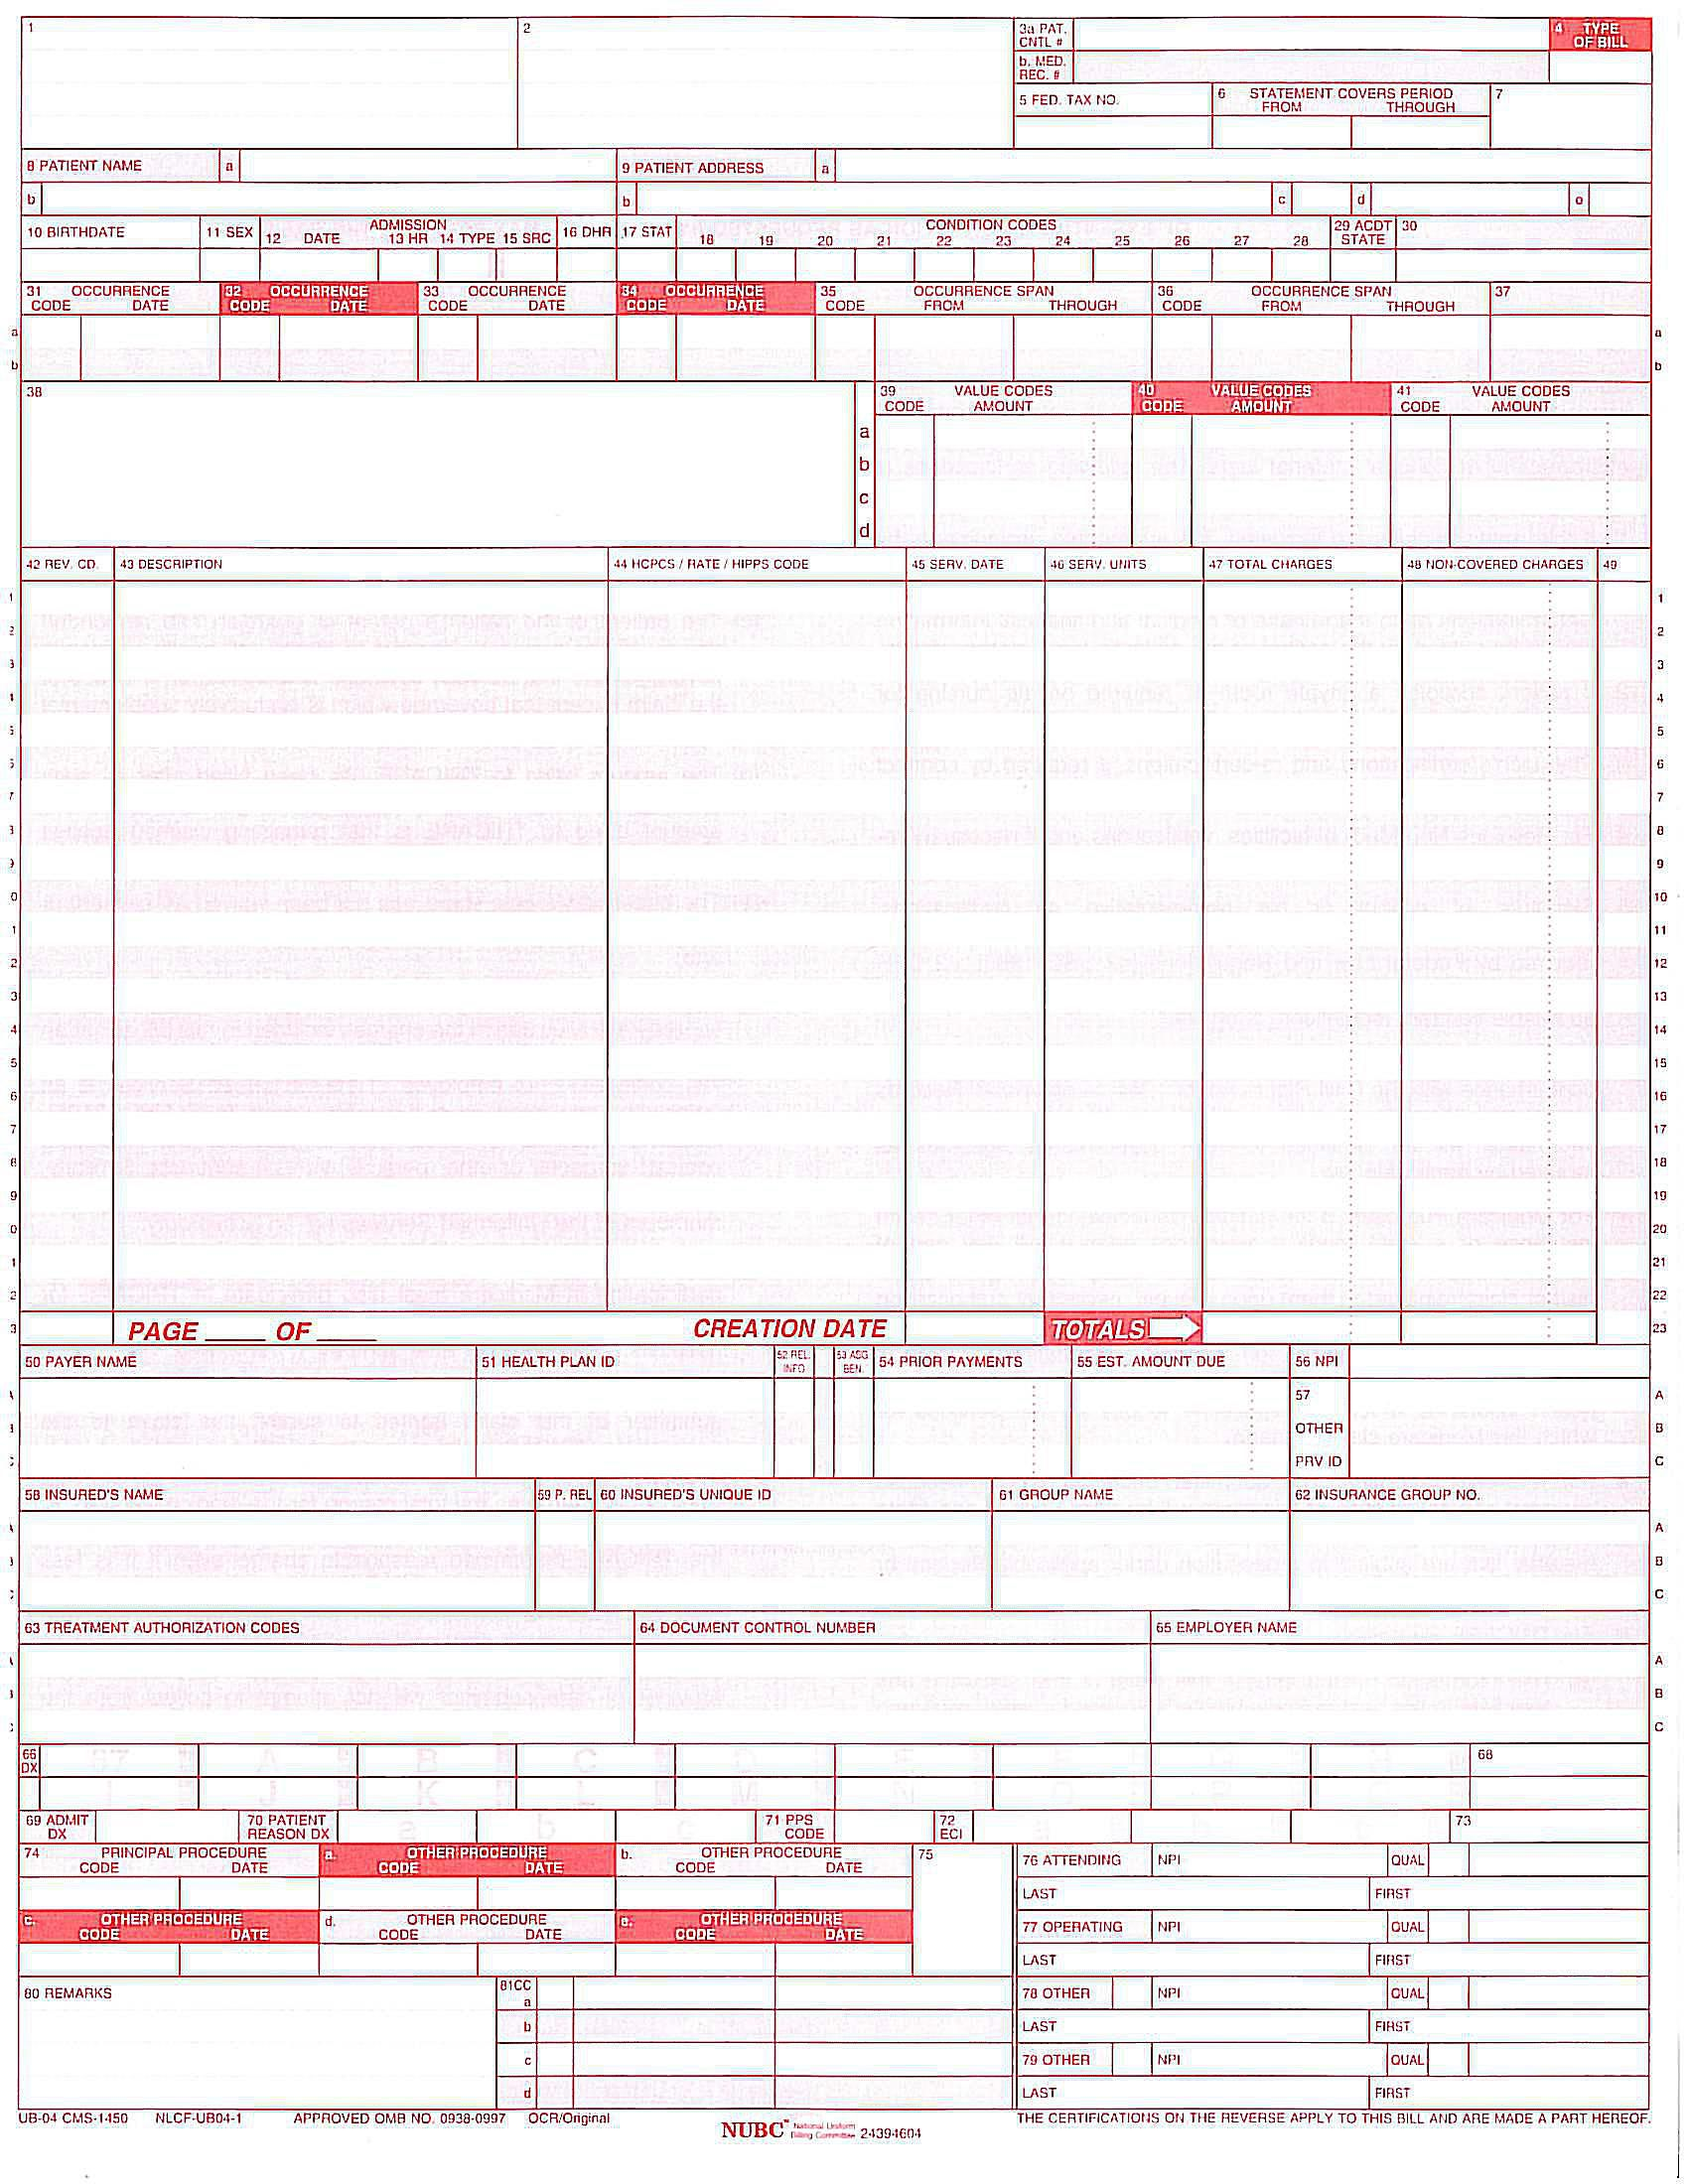 Overview of the UB 04 Billing Claim Form